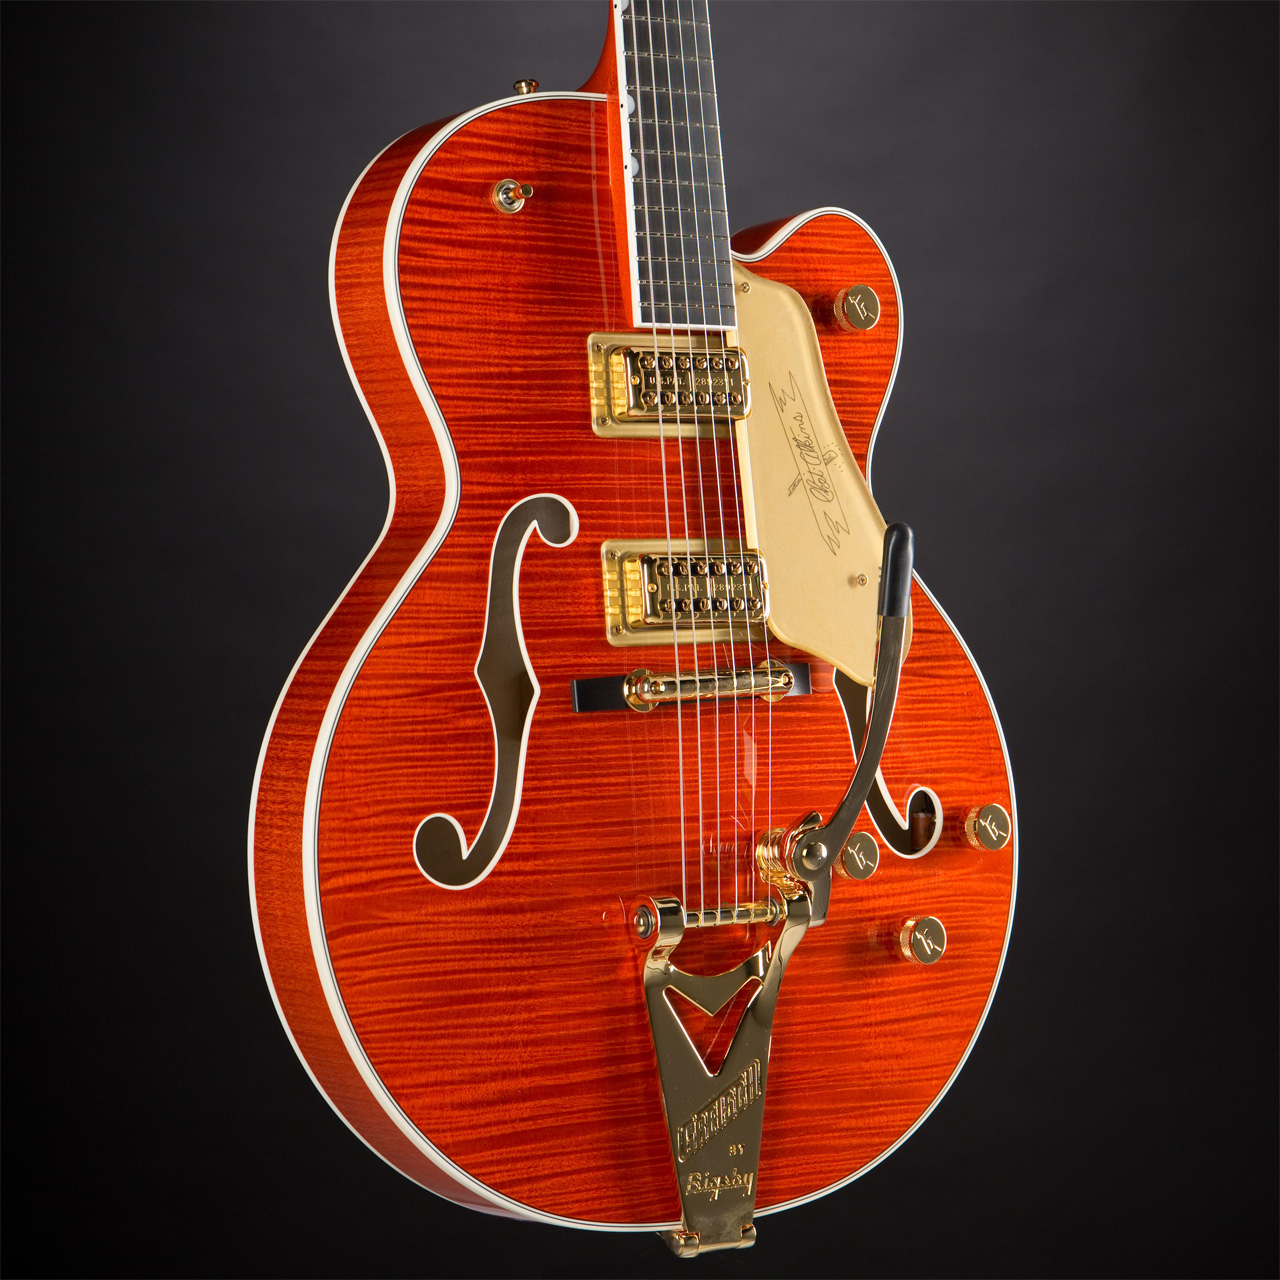 GRETSCH G6120TFM Players Edition Nashville Bigsby Flame Maple Orange Stain Korpus